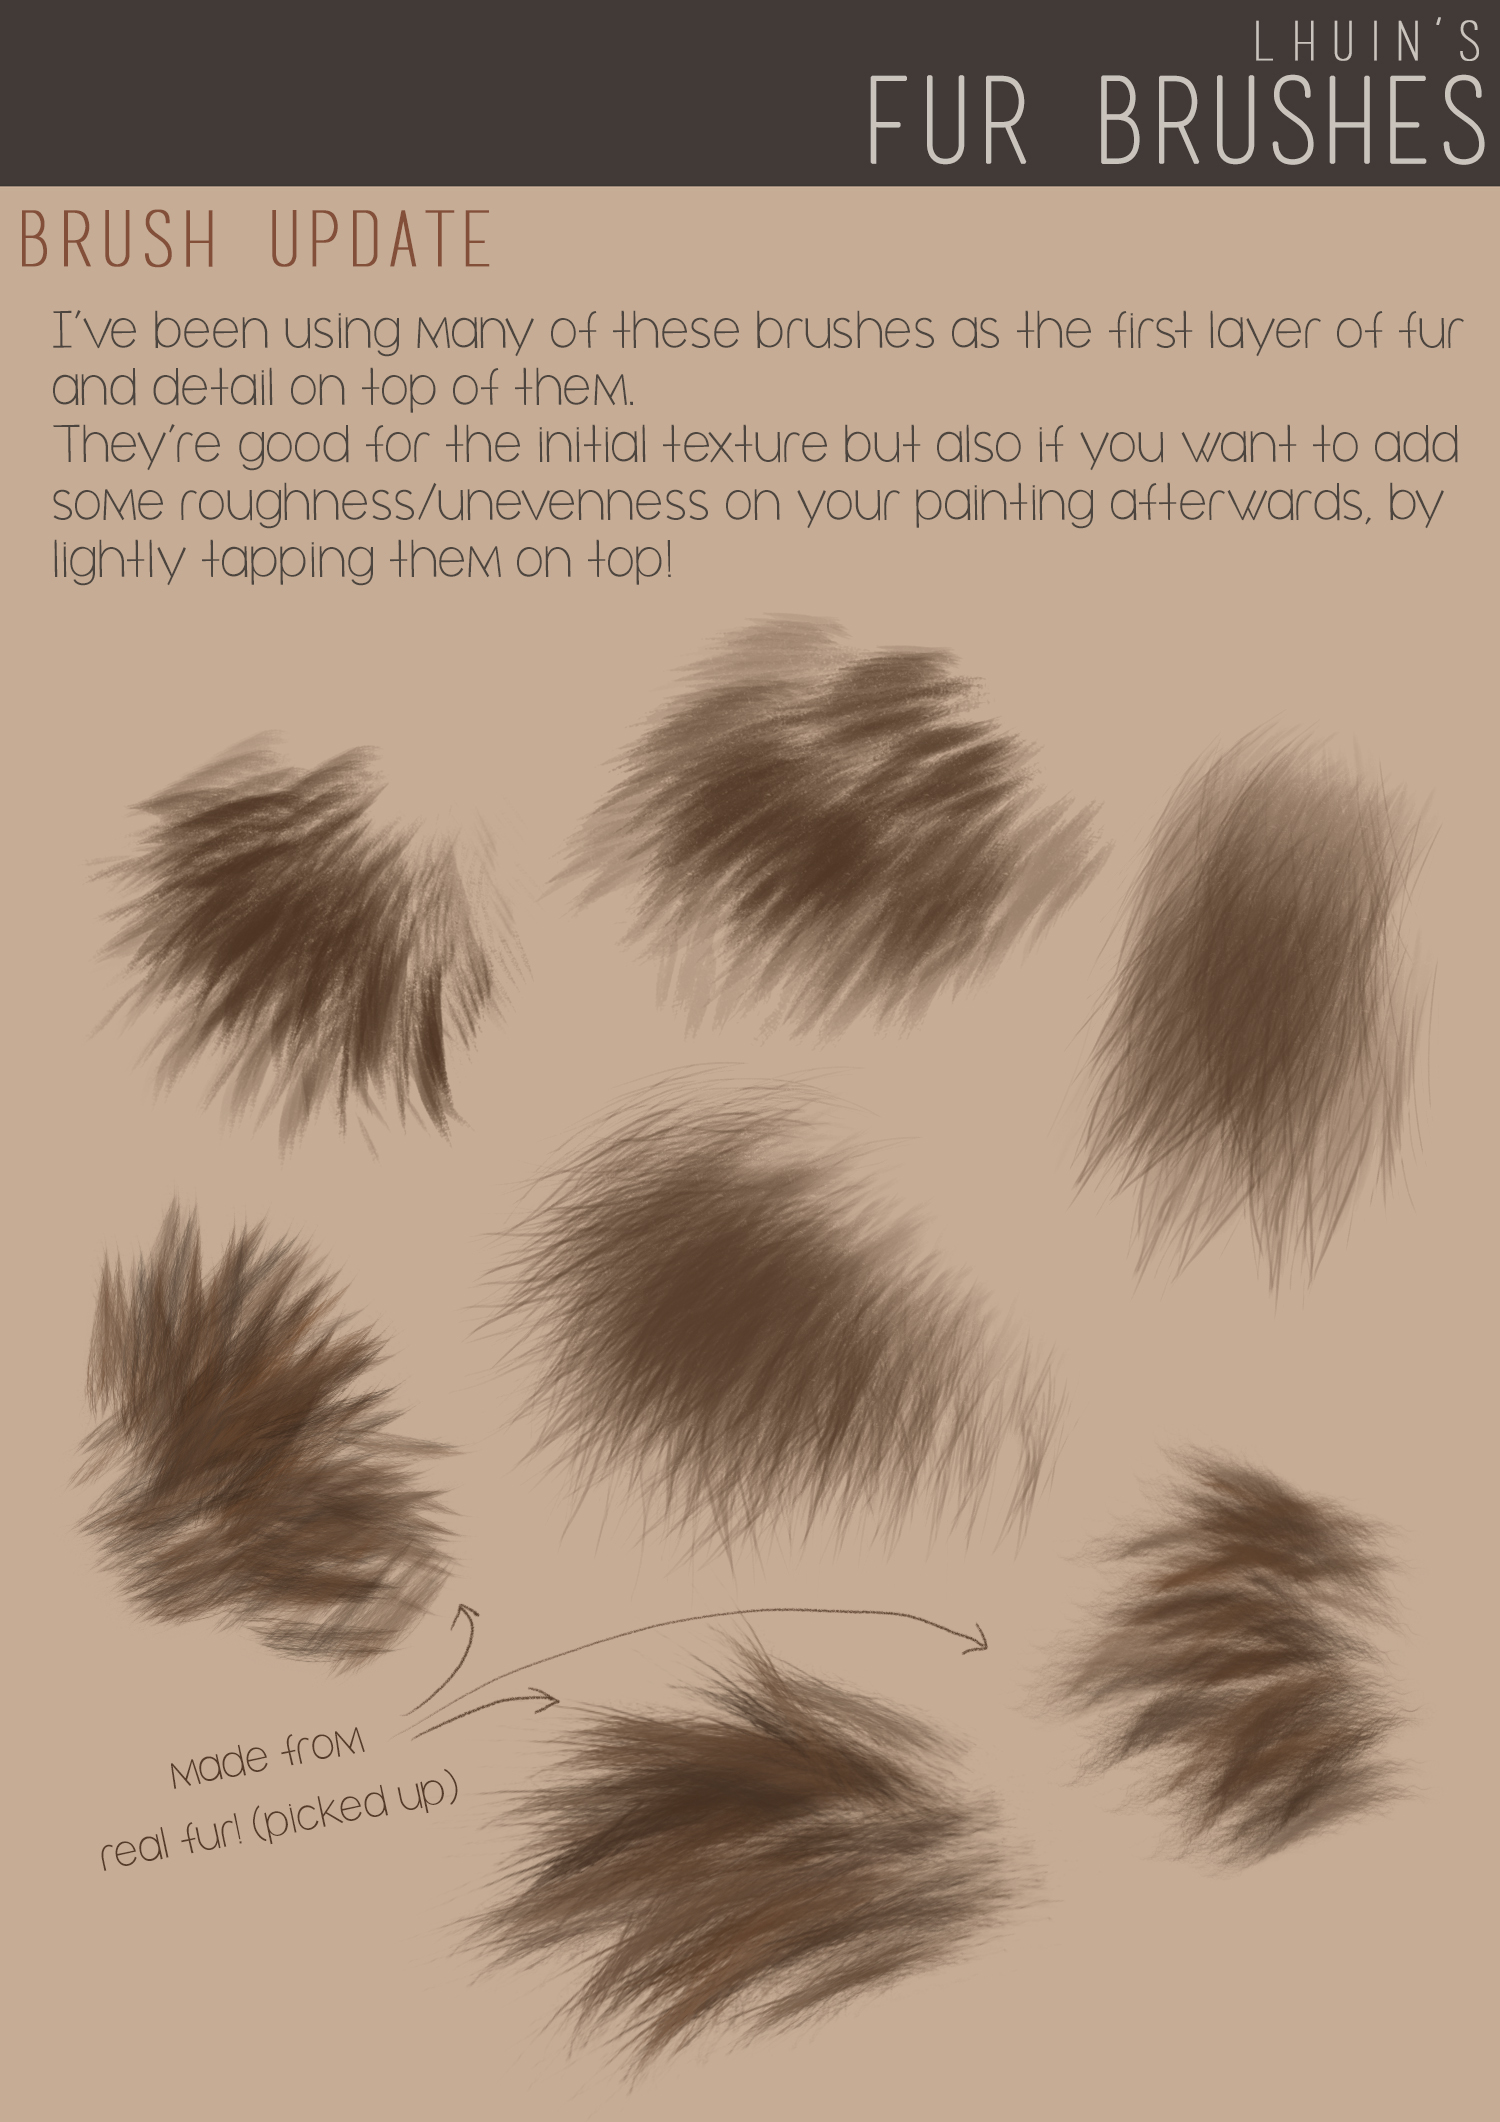 逼真毛发PS笔刷下载 Fur Brushes for Photoshop + Update插图(1)